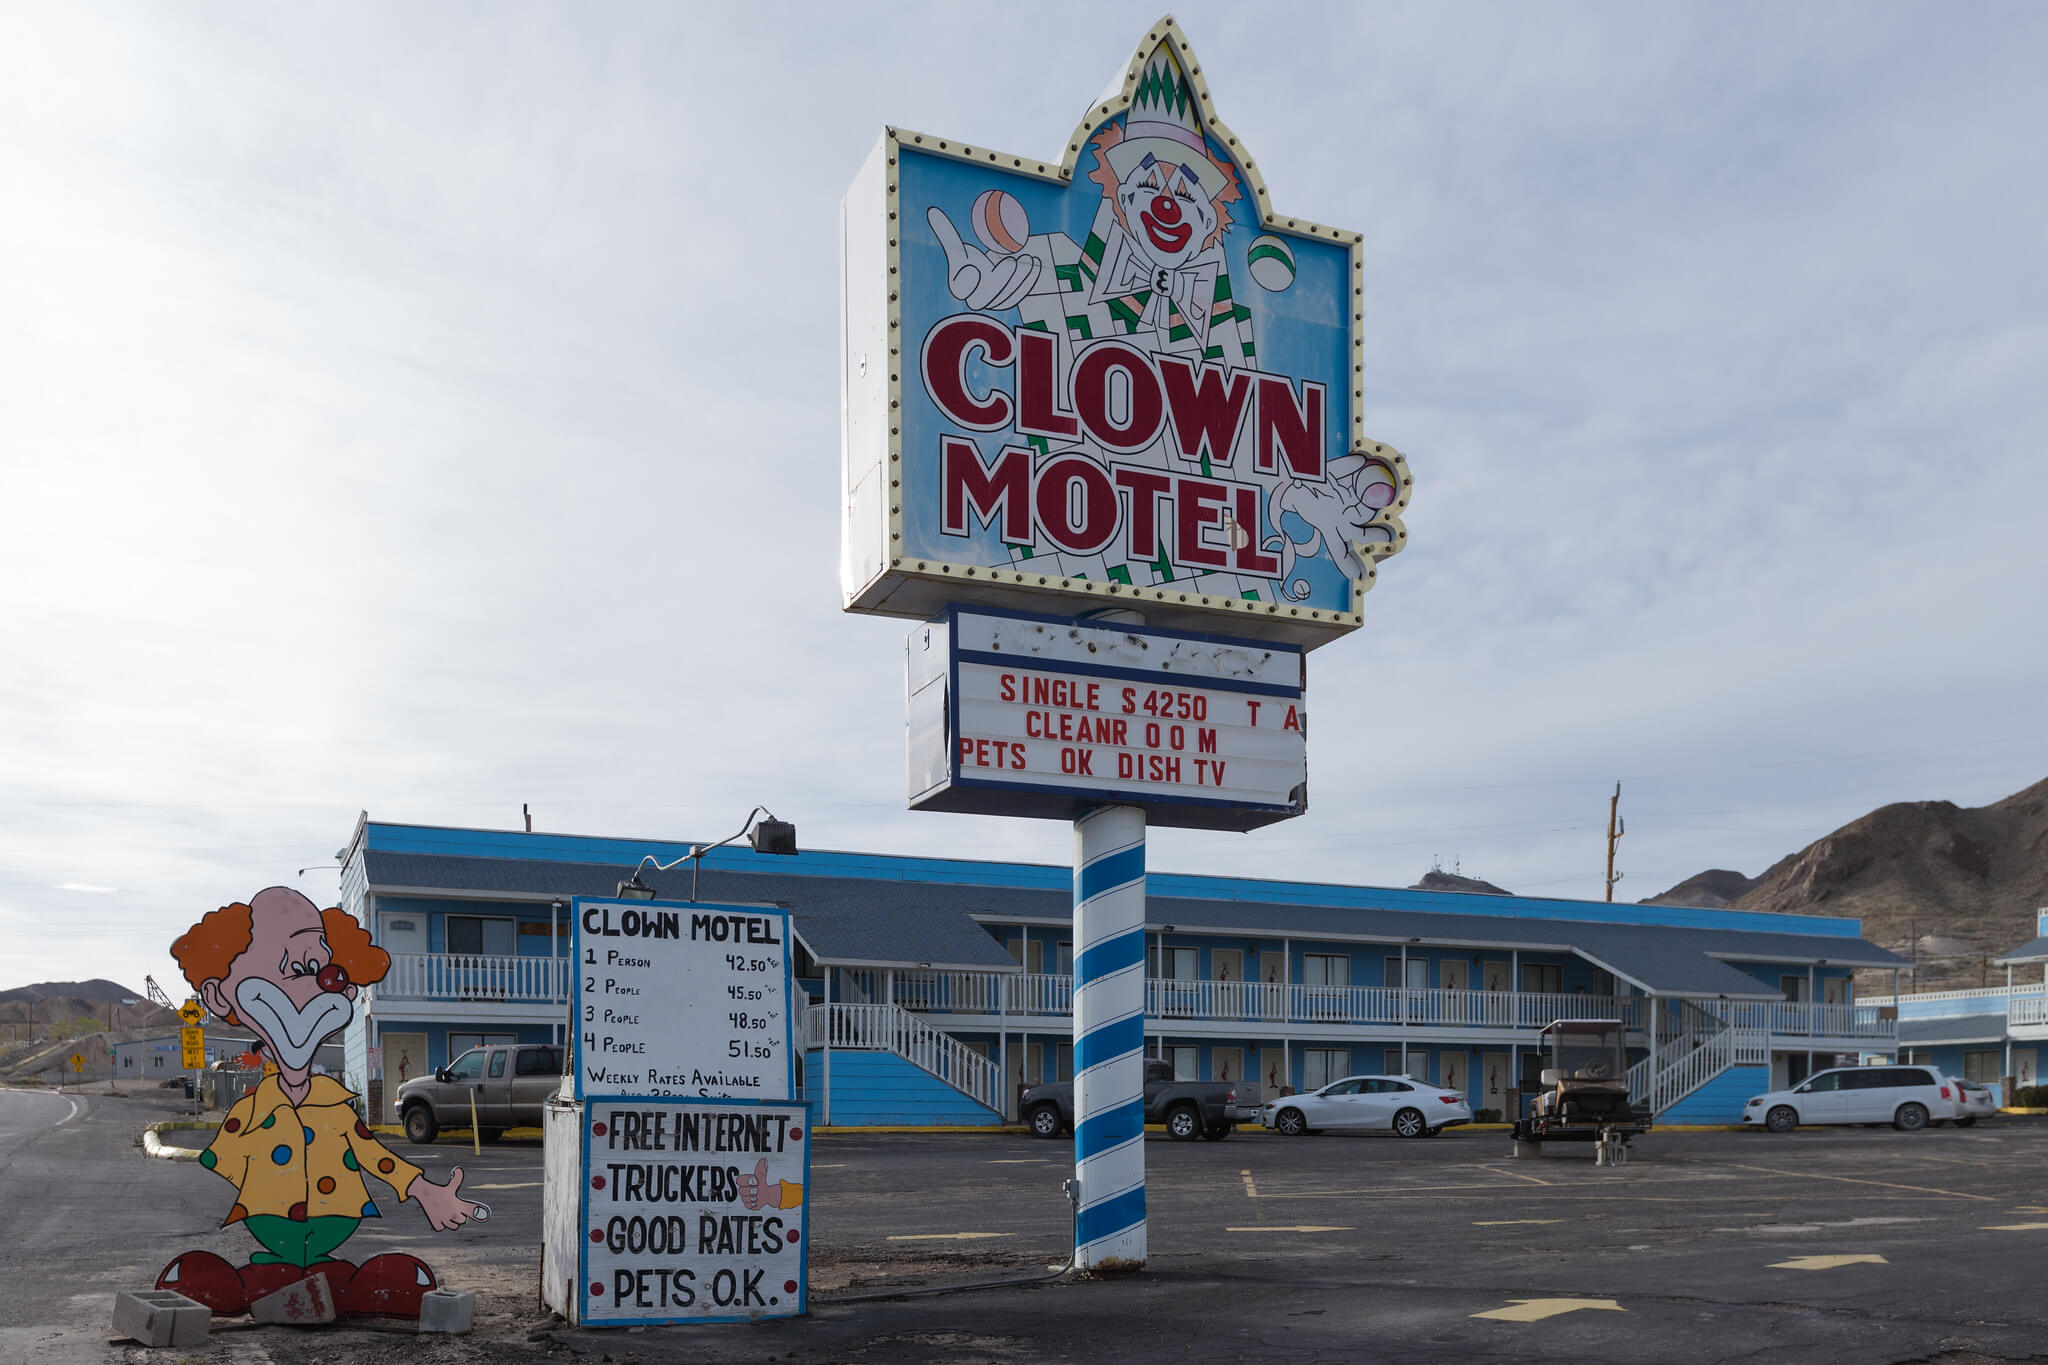 Famous 'Creepy' Clown Motel tourist attraction in Tonopah, Nevada